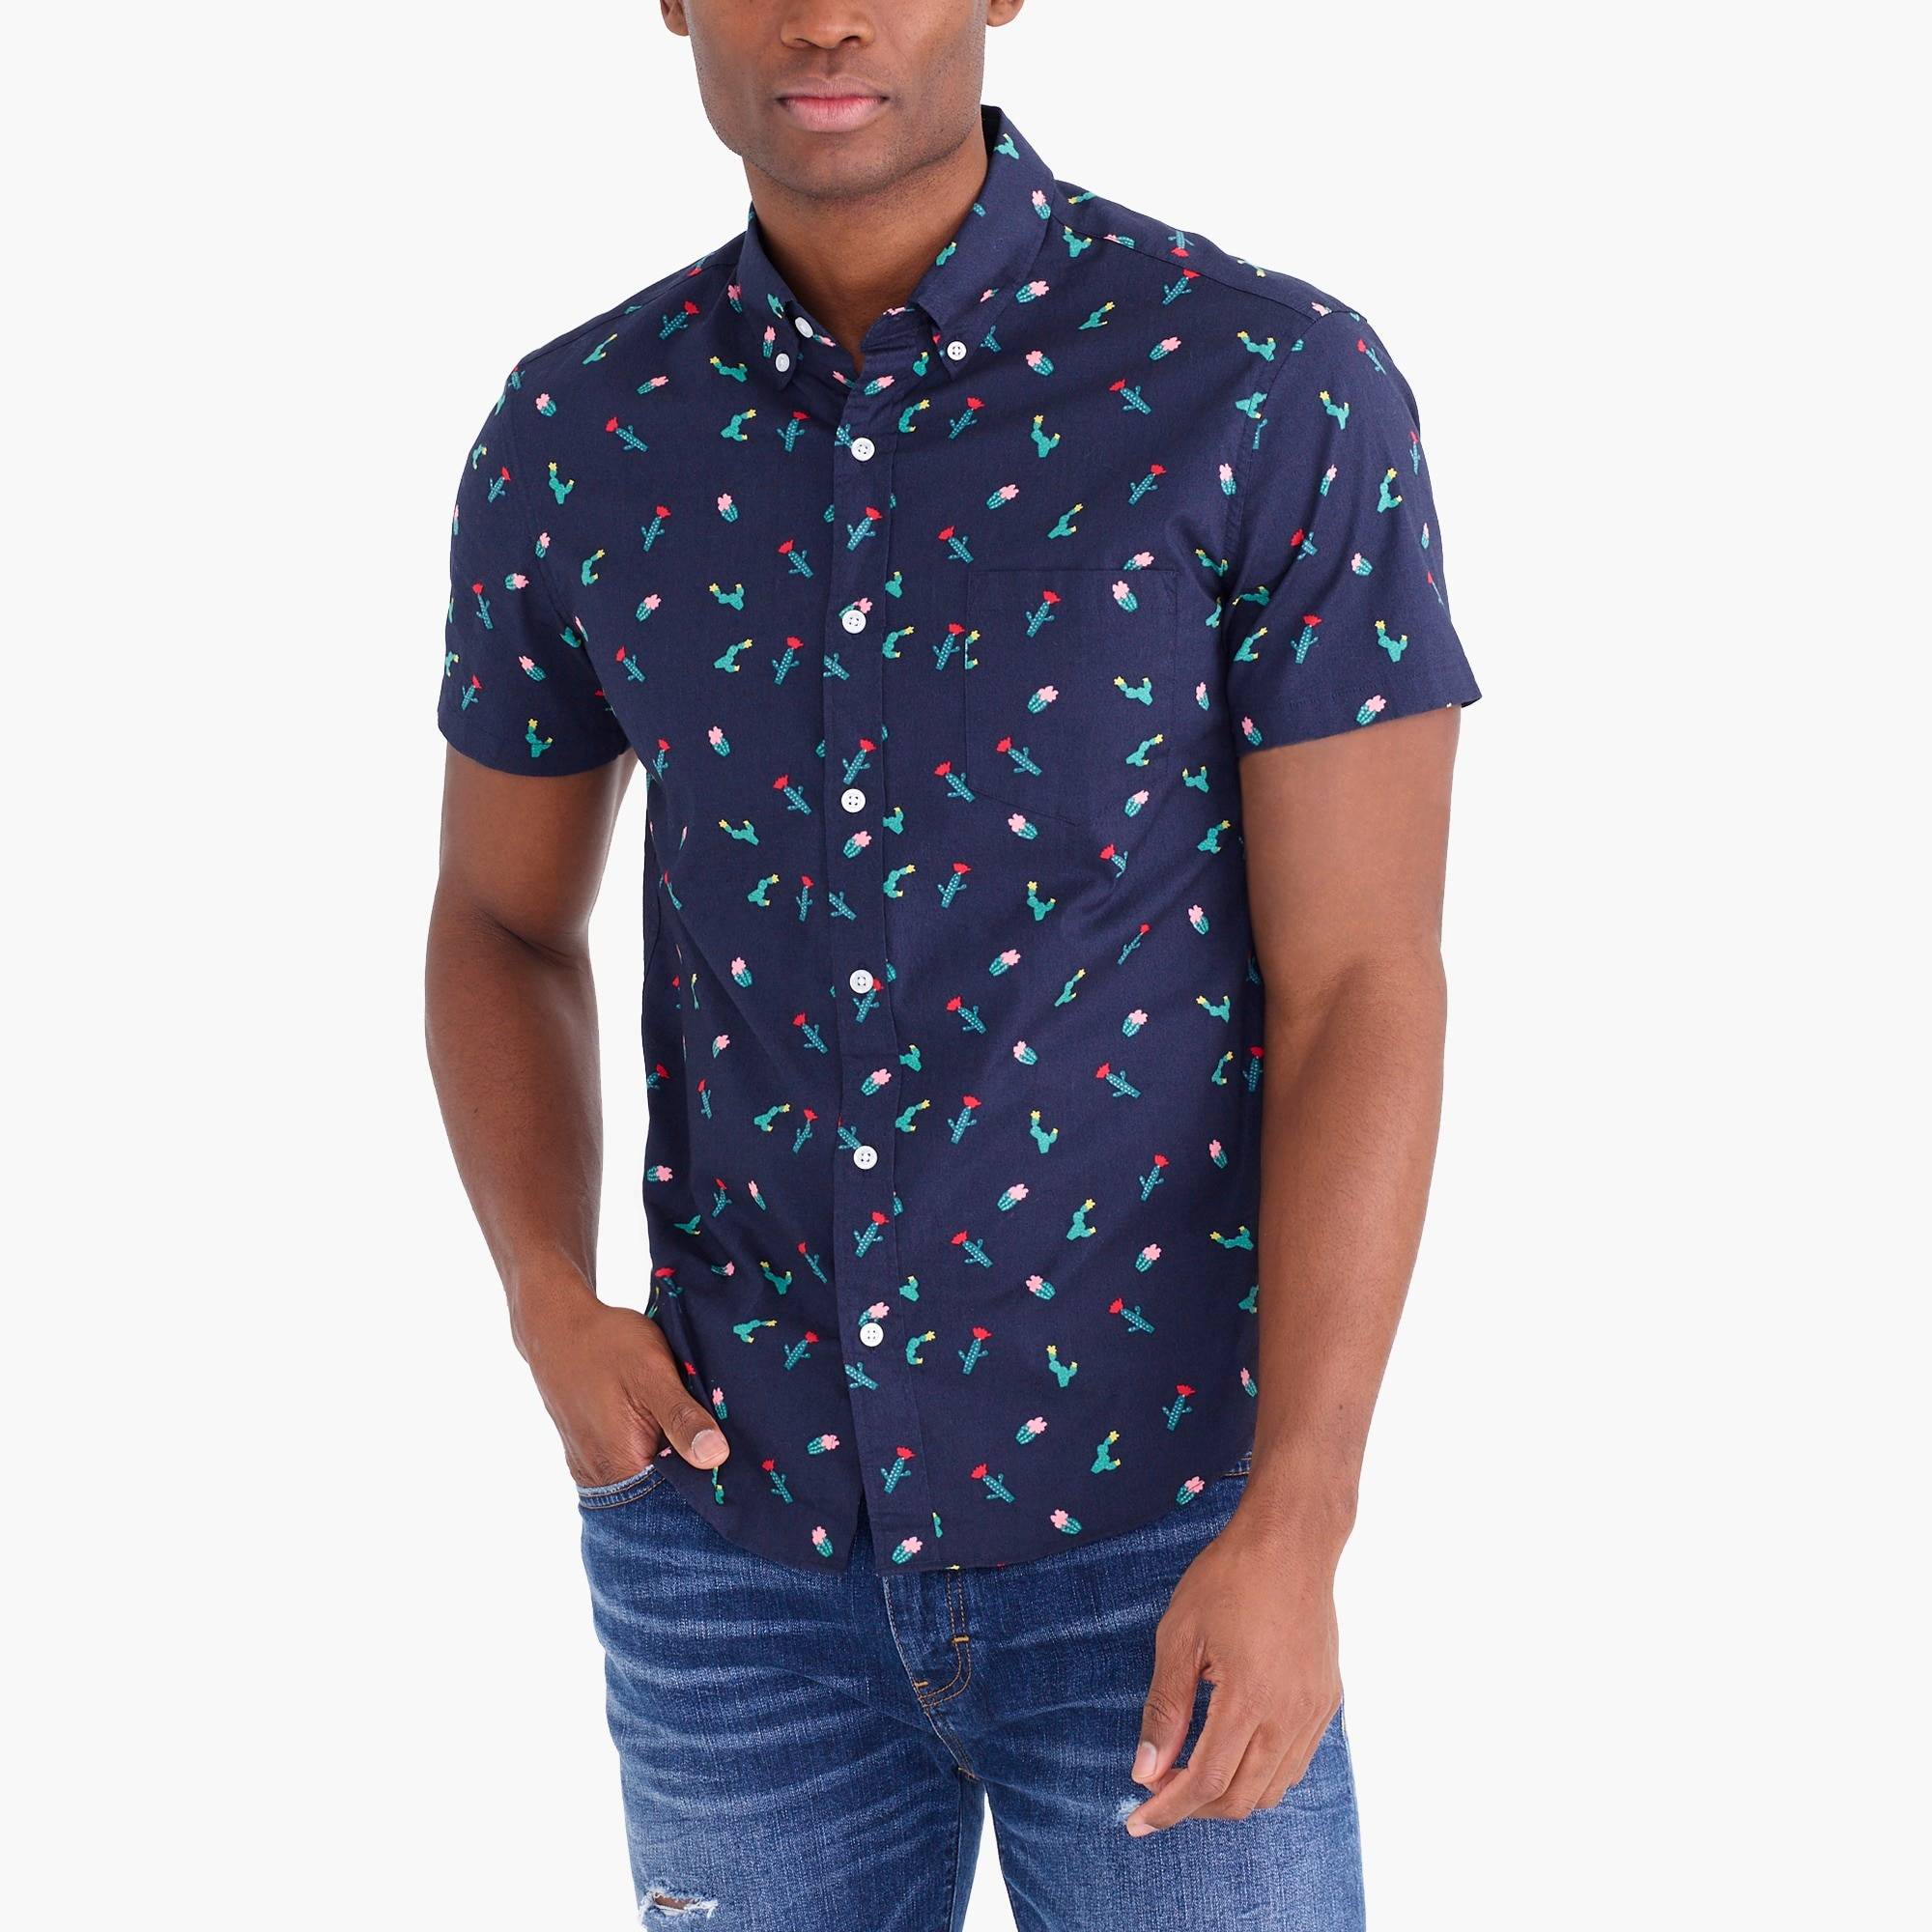 Image 1 for Slim flex washed short-sleeve shirt in print